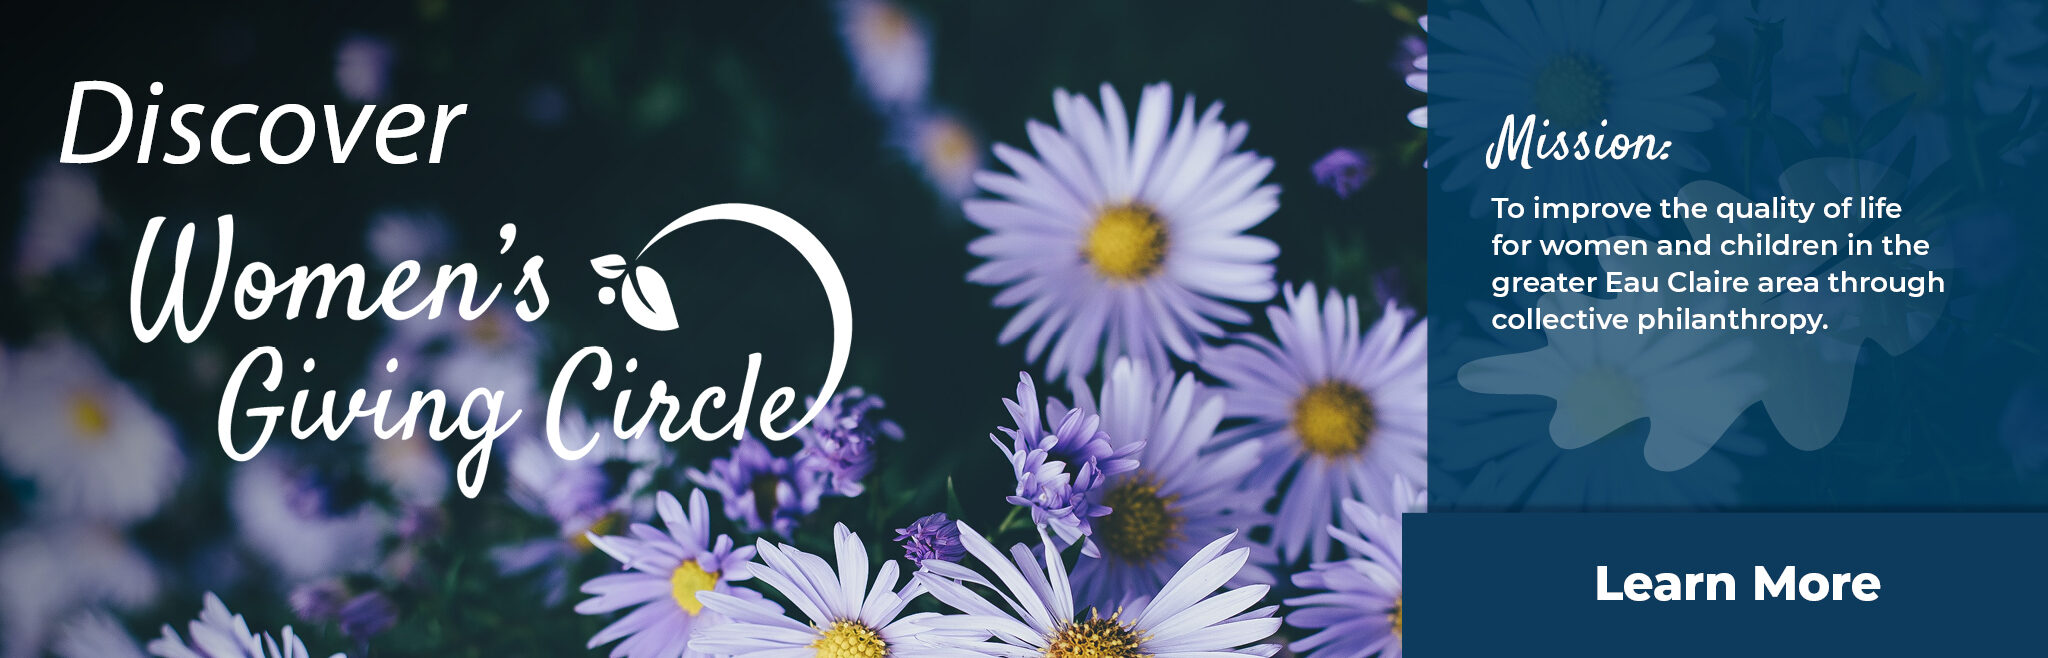 Discover Women's Giving Circle